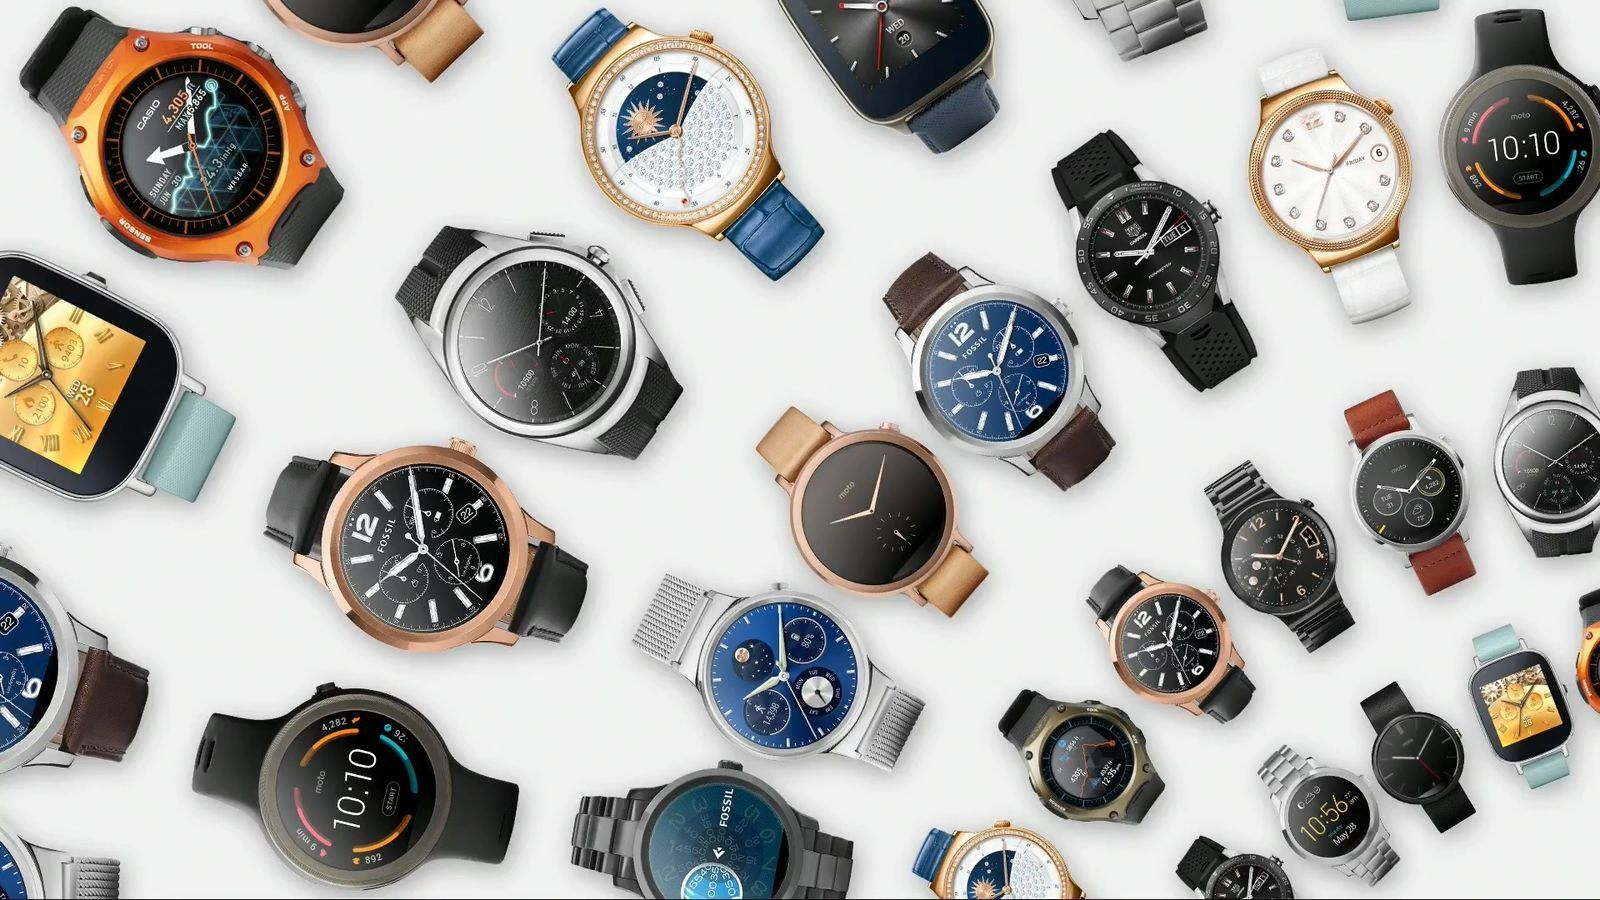 Android Wear 2.0 : la Developer Preview 4 reprend la navigation de la version 1.0